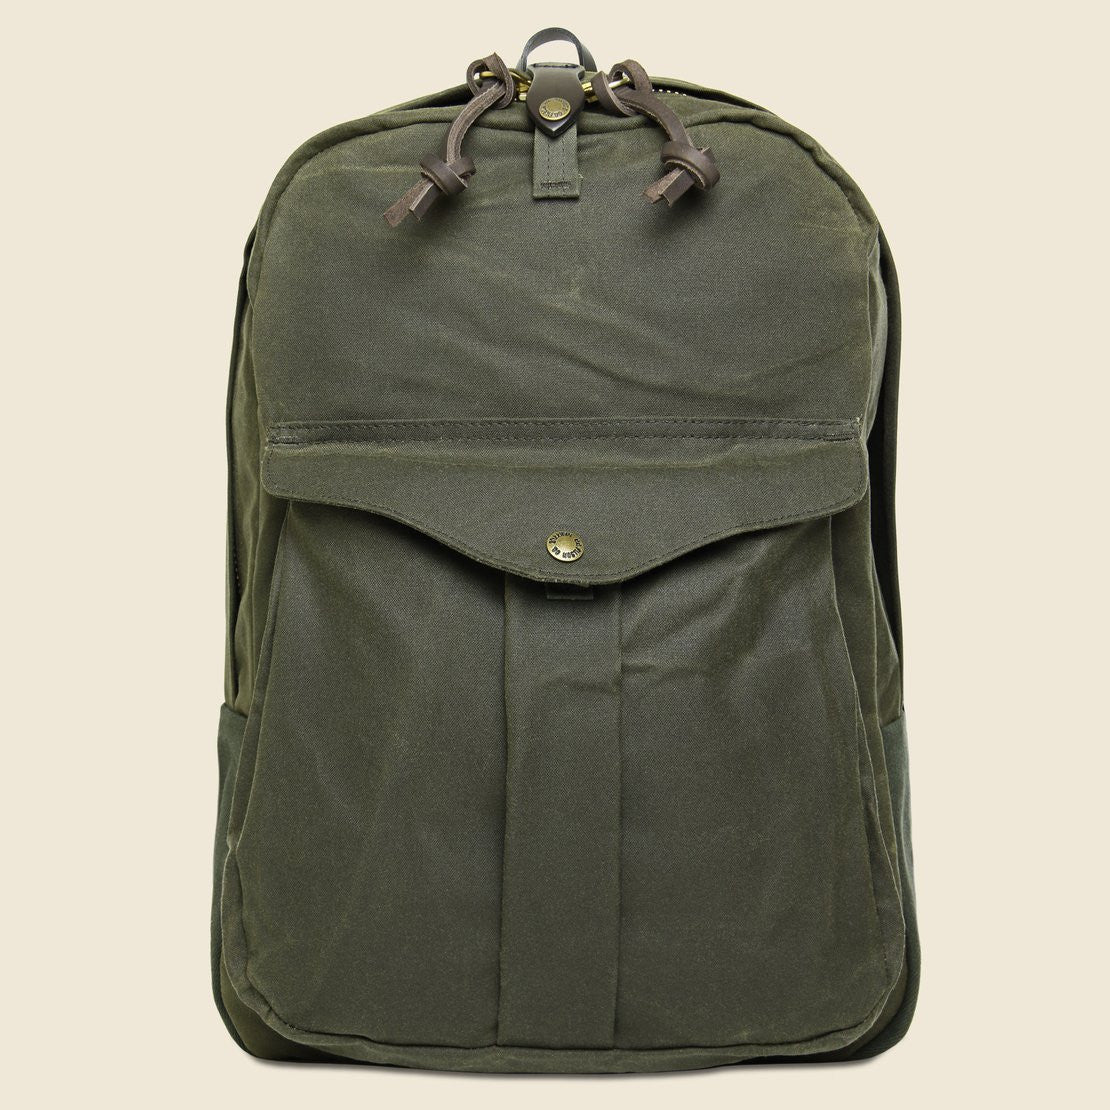 Filson Tin Cloth Journeyman Backpack - Otter Green